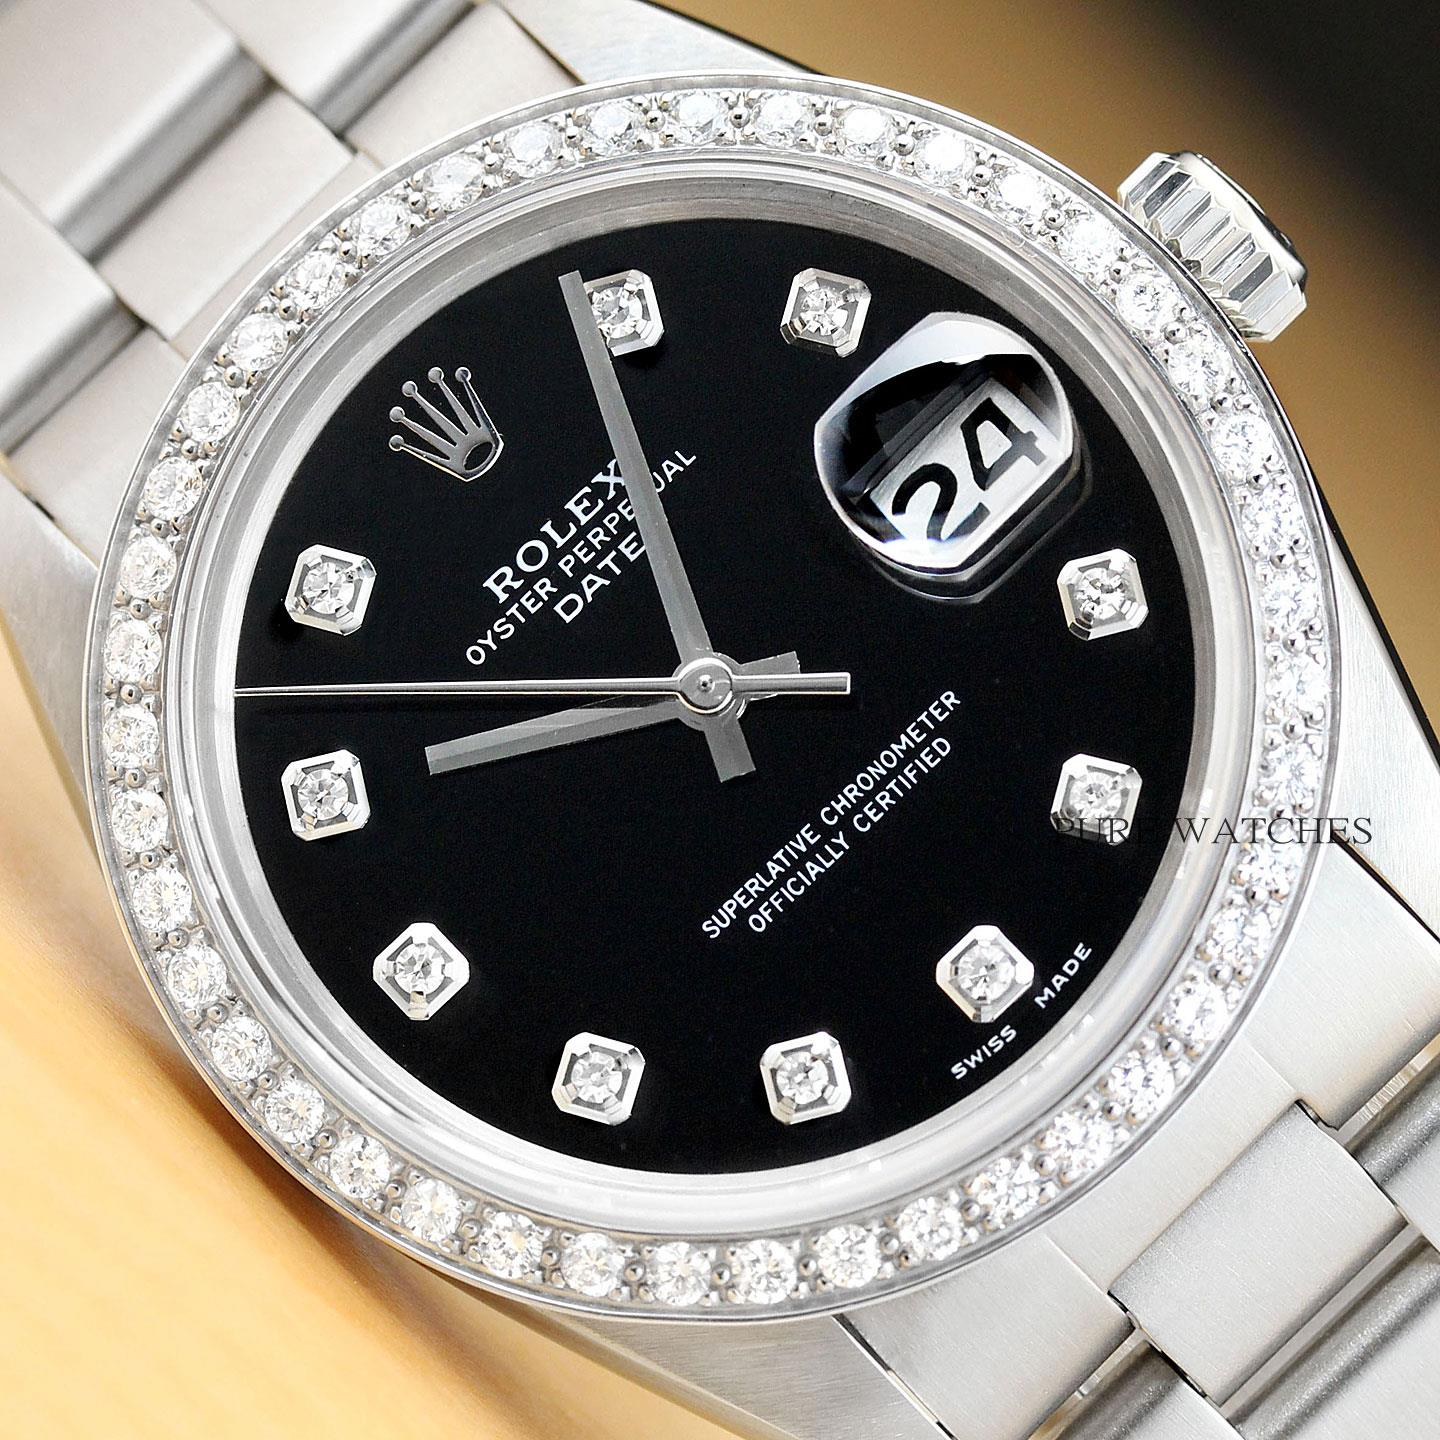 5e3aadb7d42c Details about ROLEX UNISEX 34MM OYSTER PERPETUAL DATE 18K WHITE GOLD  DIAMOND STEEL WATCH